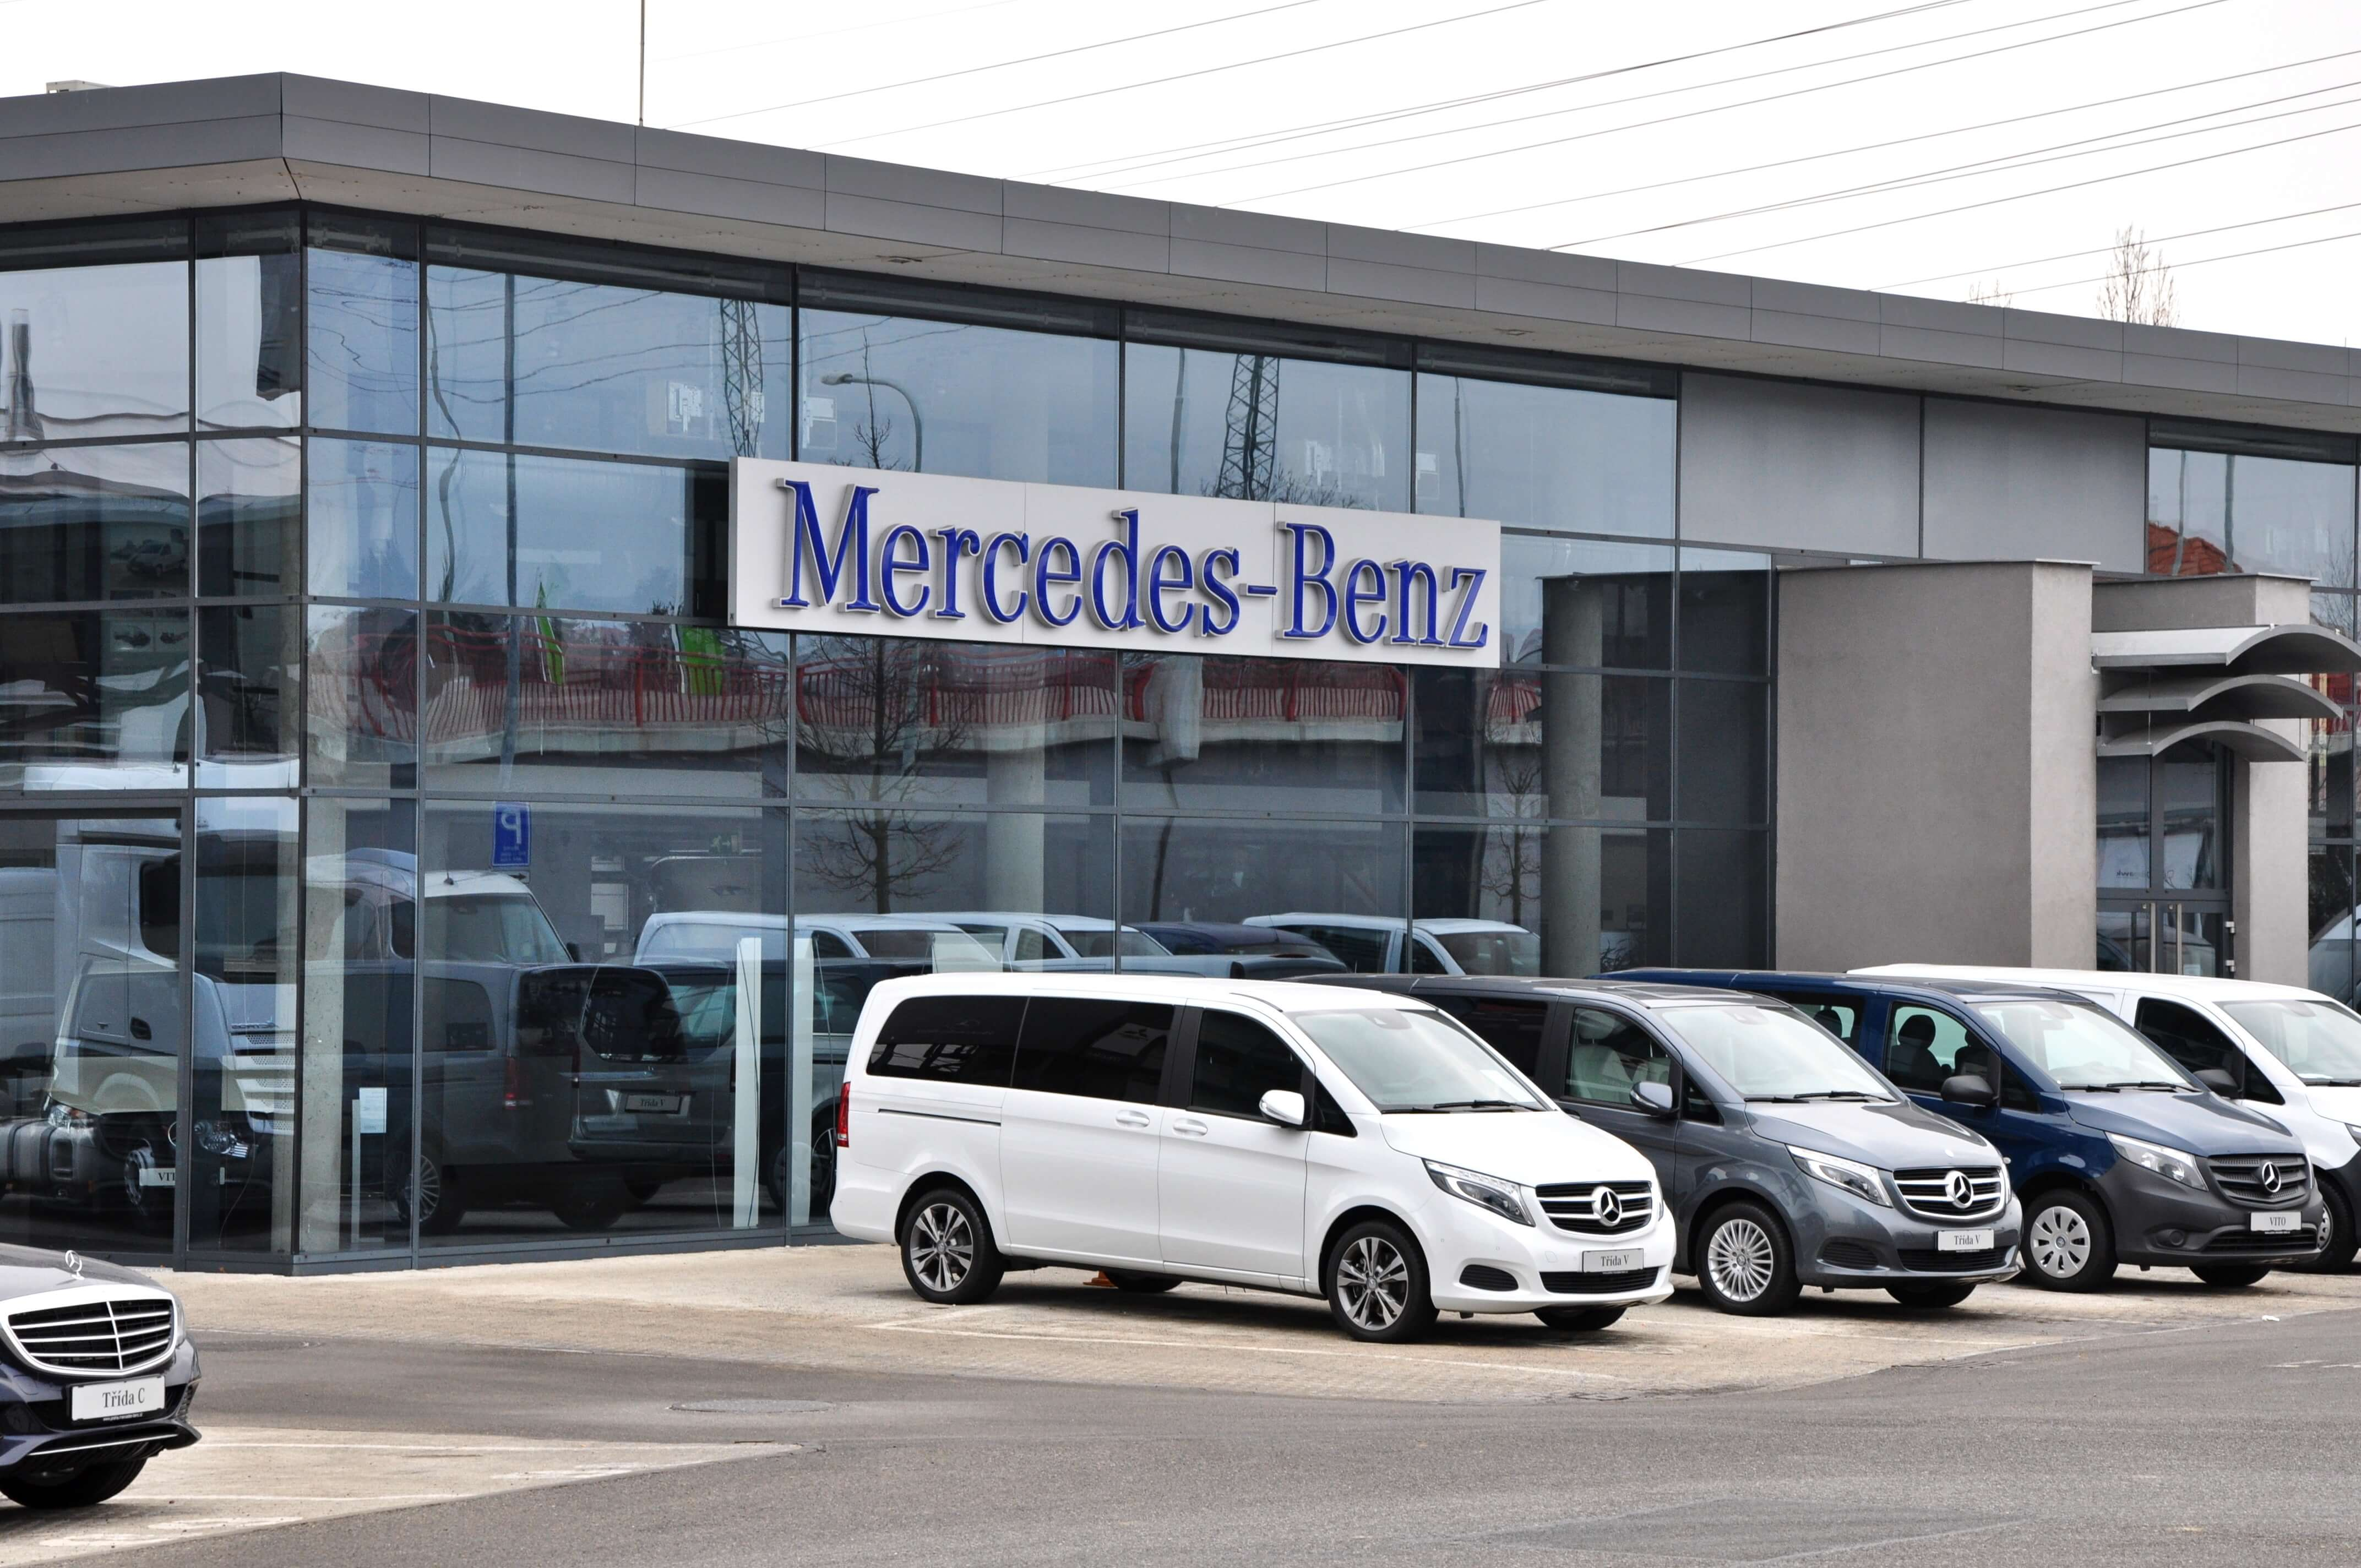 The revenue of the Mercedes Benz is decreasing